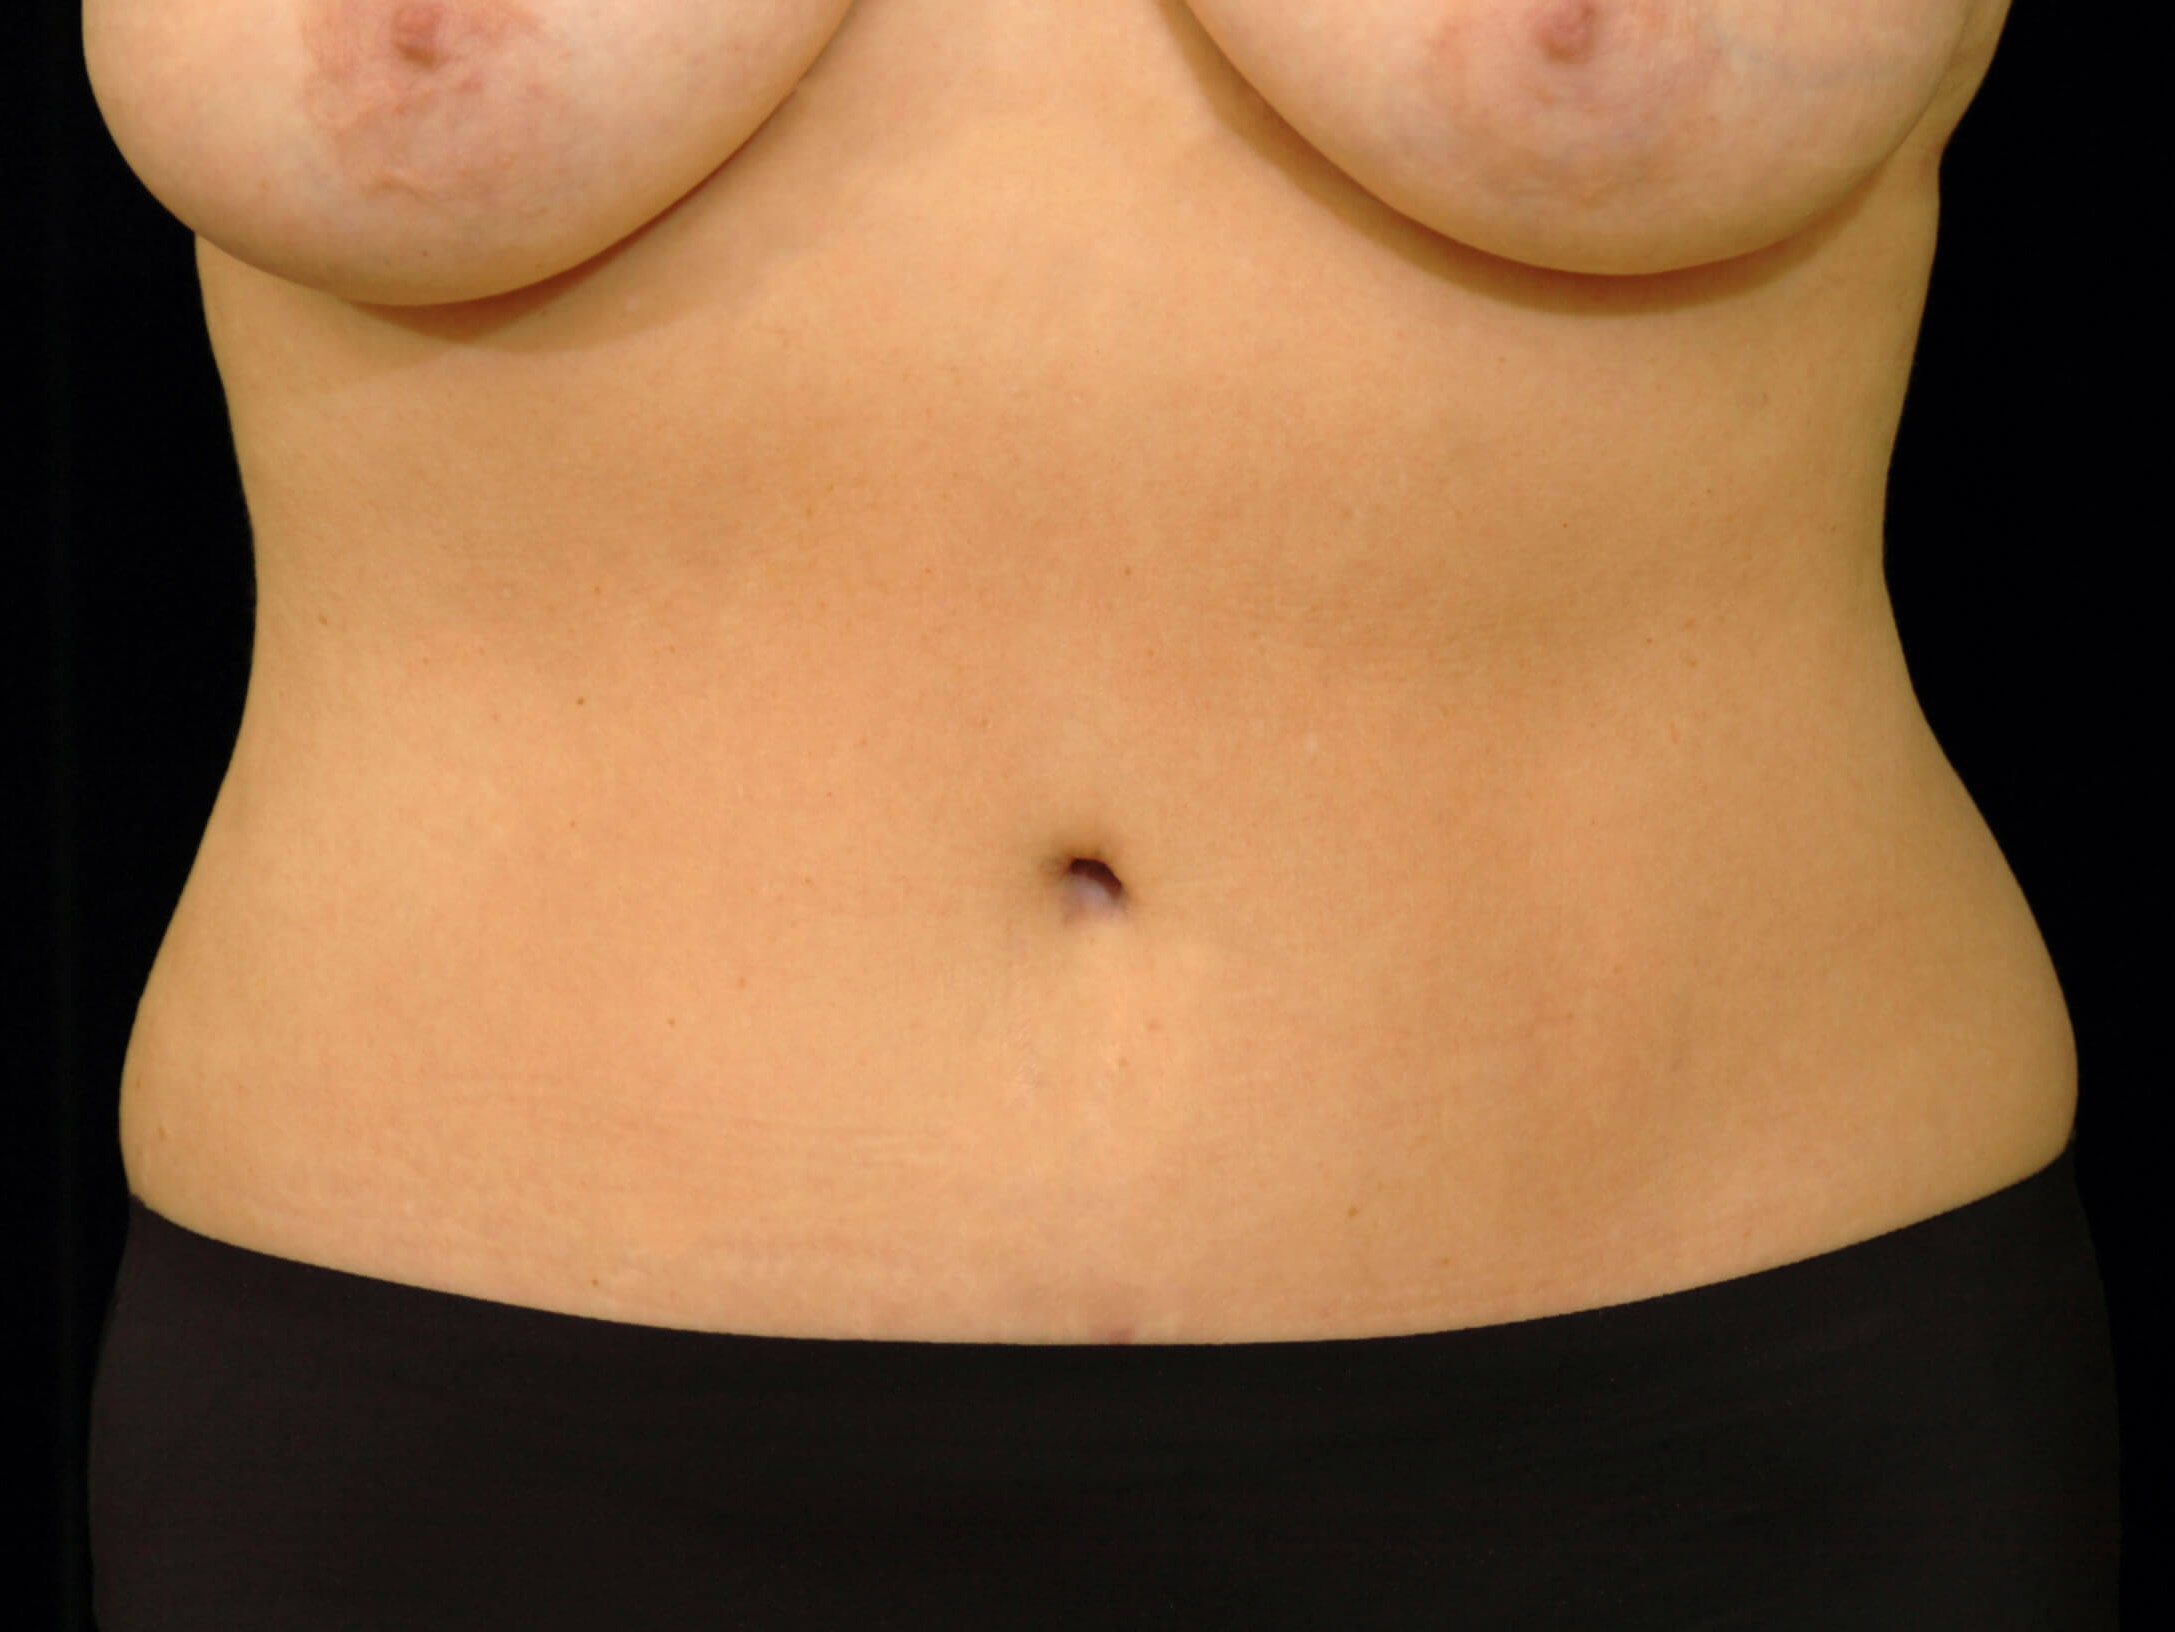 ALLEN, TEXAS WOMAN GETS MIDSECTION MAKEOVER WITH A TUMMY TUCK PROCEDURE